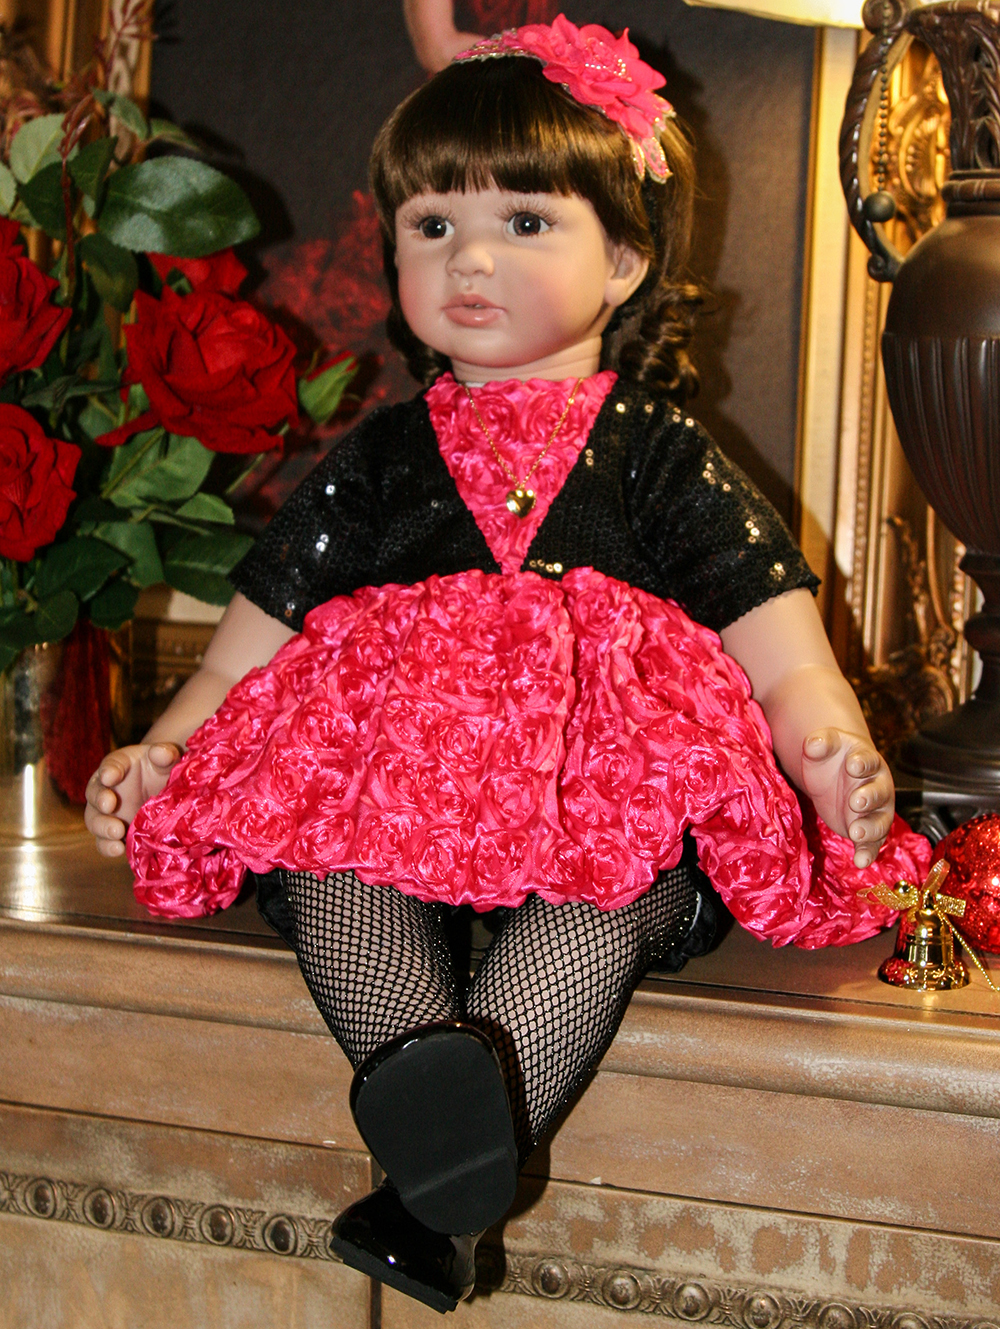 Pursue 24/60 cm Real Life Vinyl Silicone Reborn Toddler Princess Girl Baby Alive Doll Toys for Girls Christmas Birthday Gifts handmade new model soft vinyl silicone reborn toddler princess girl baby alive doll toys with strap denim skirts birthday gifts